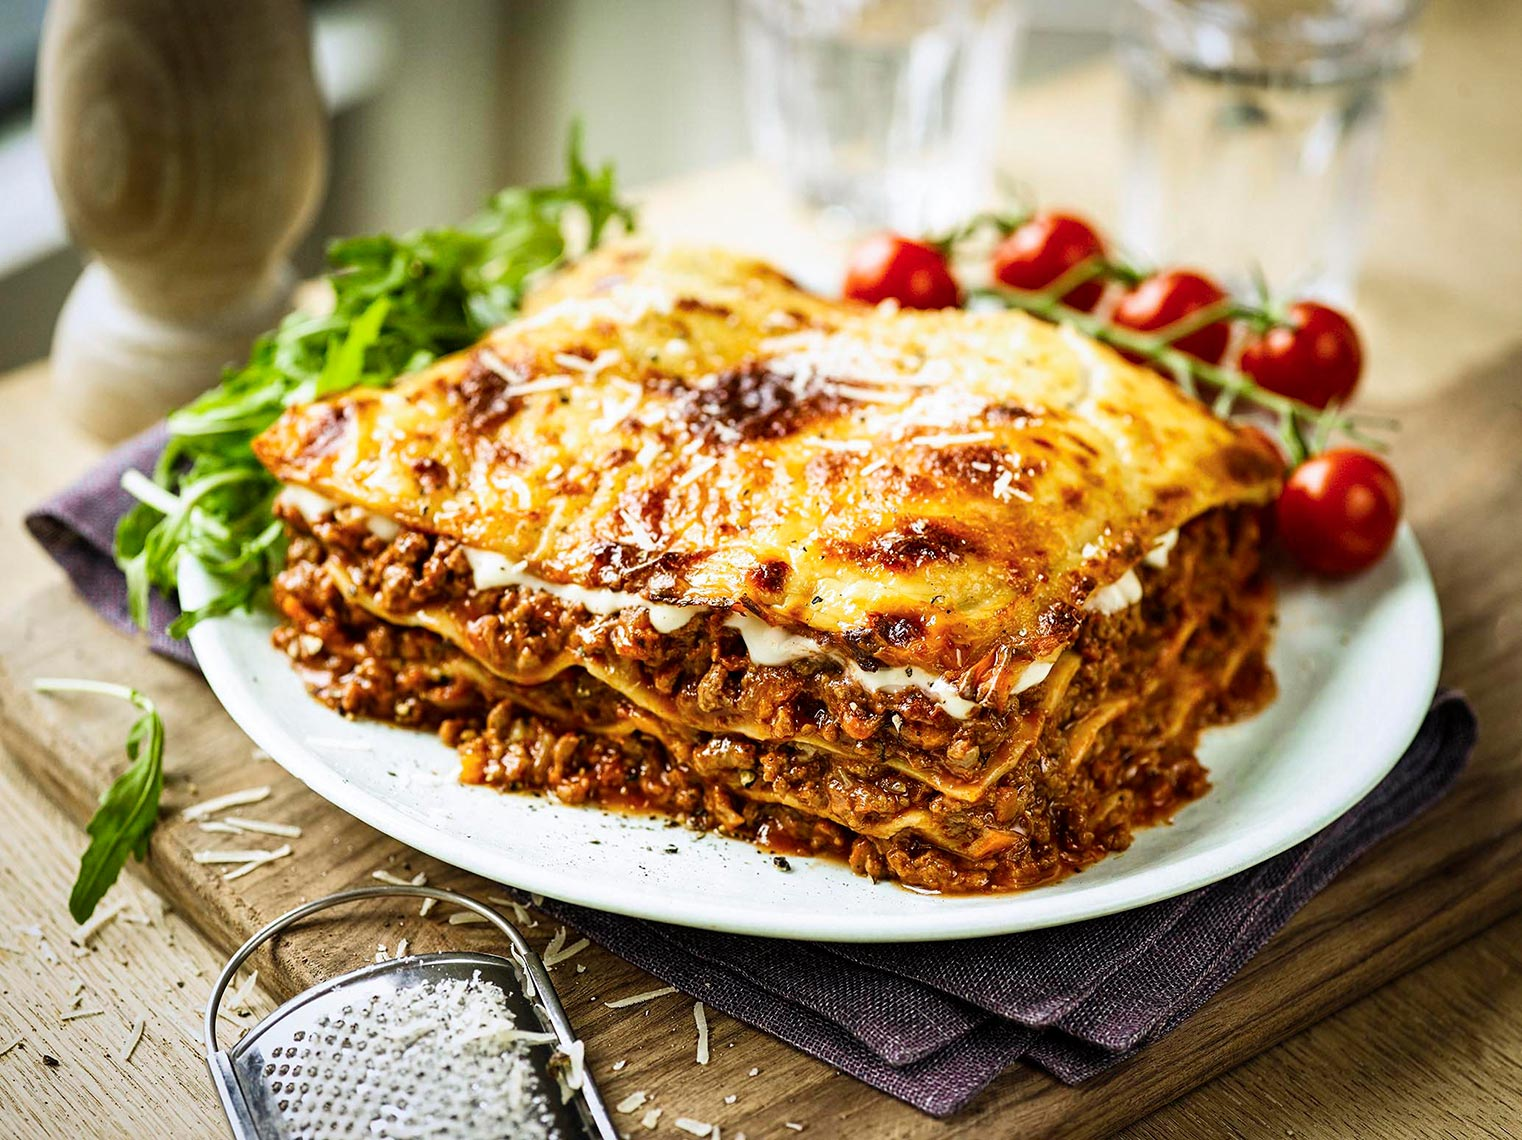 Tesco lasagne | Colin Campbell-Food Photographer